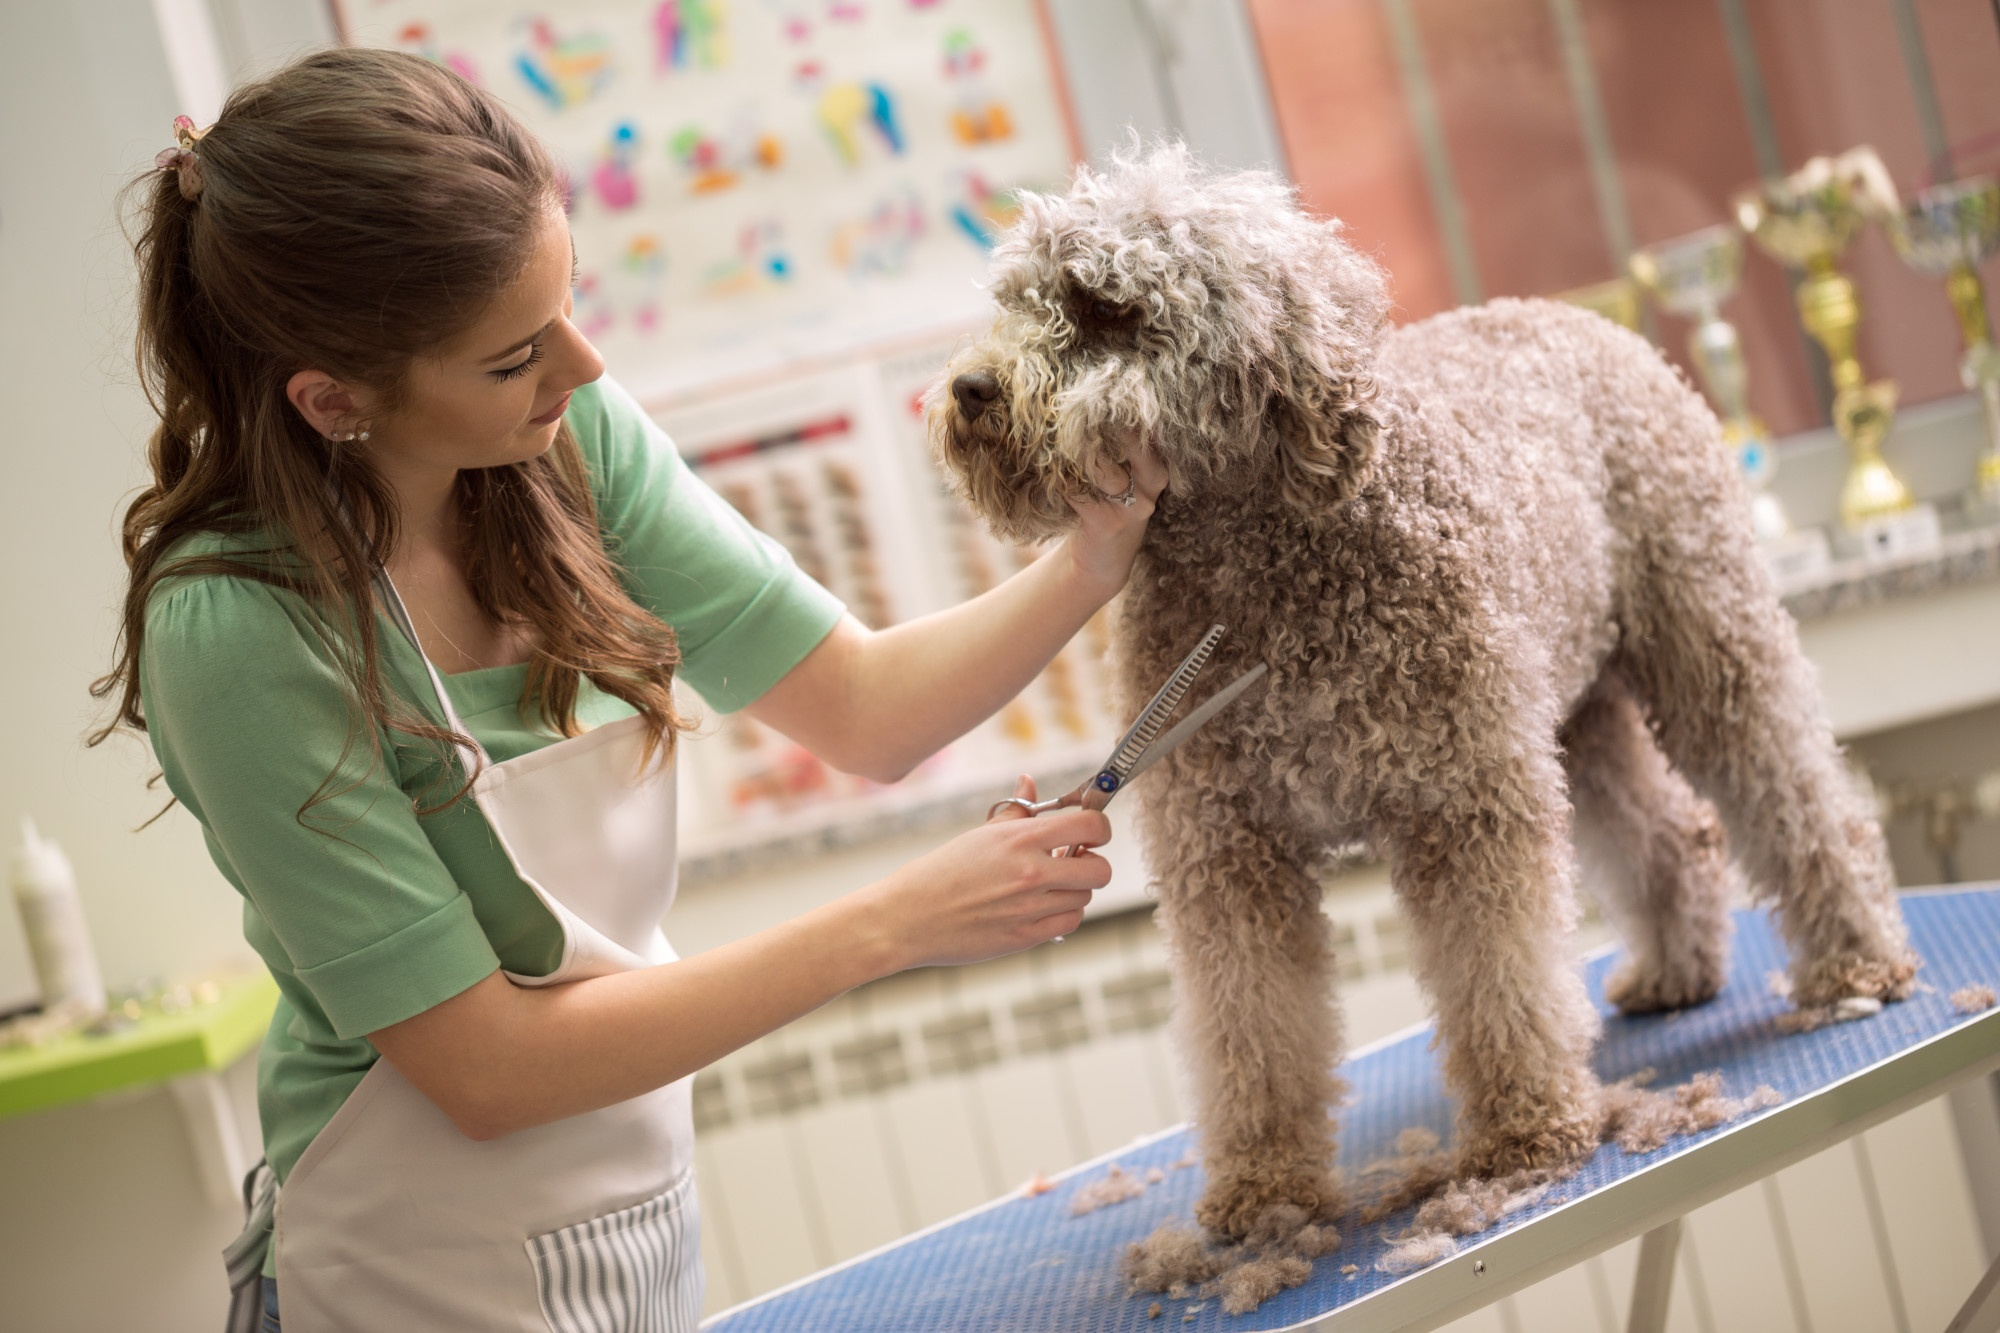 8 Reasons to Have Your Pets Professionally Groomed